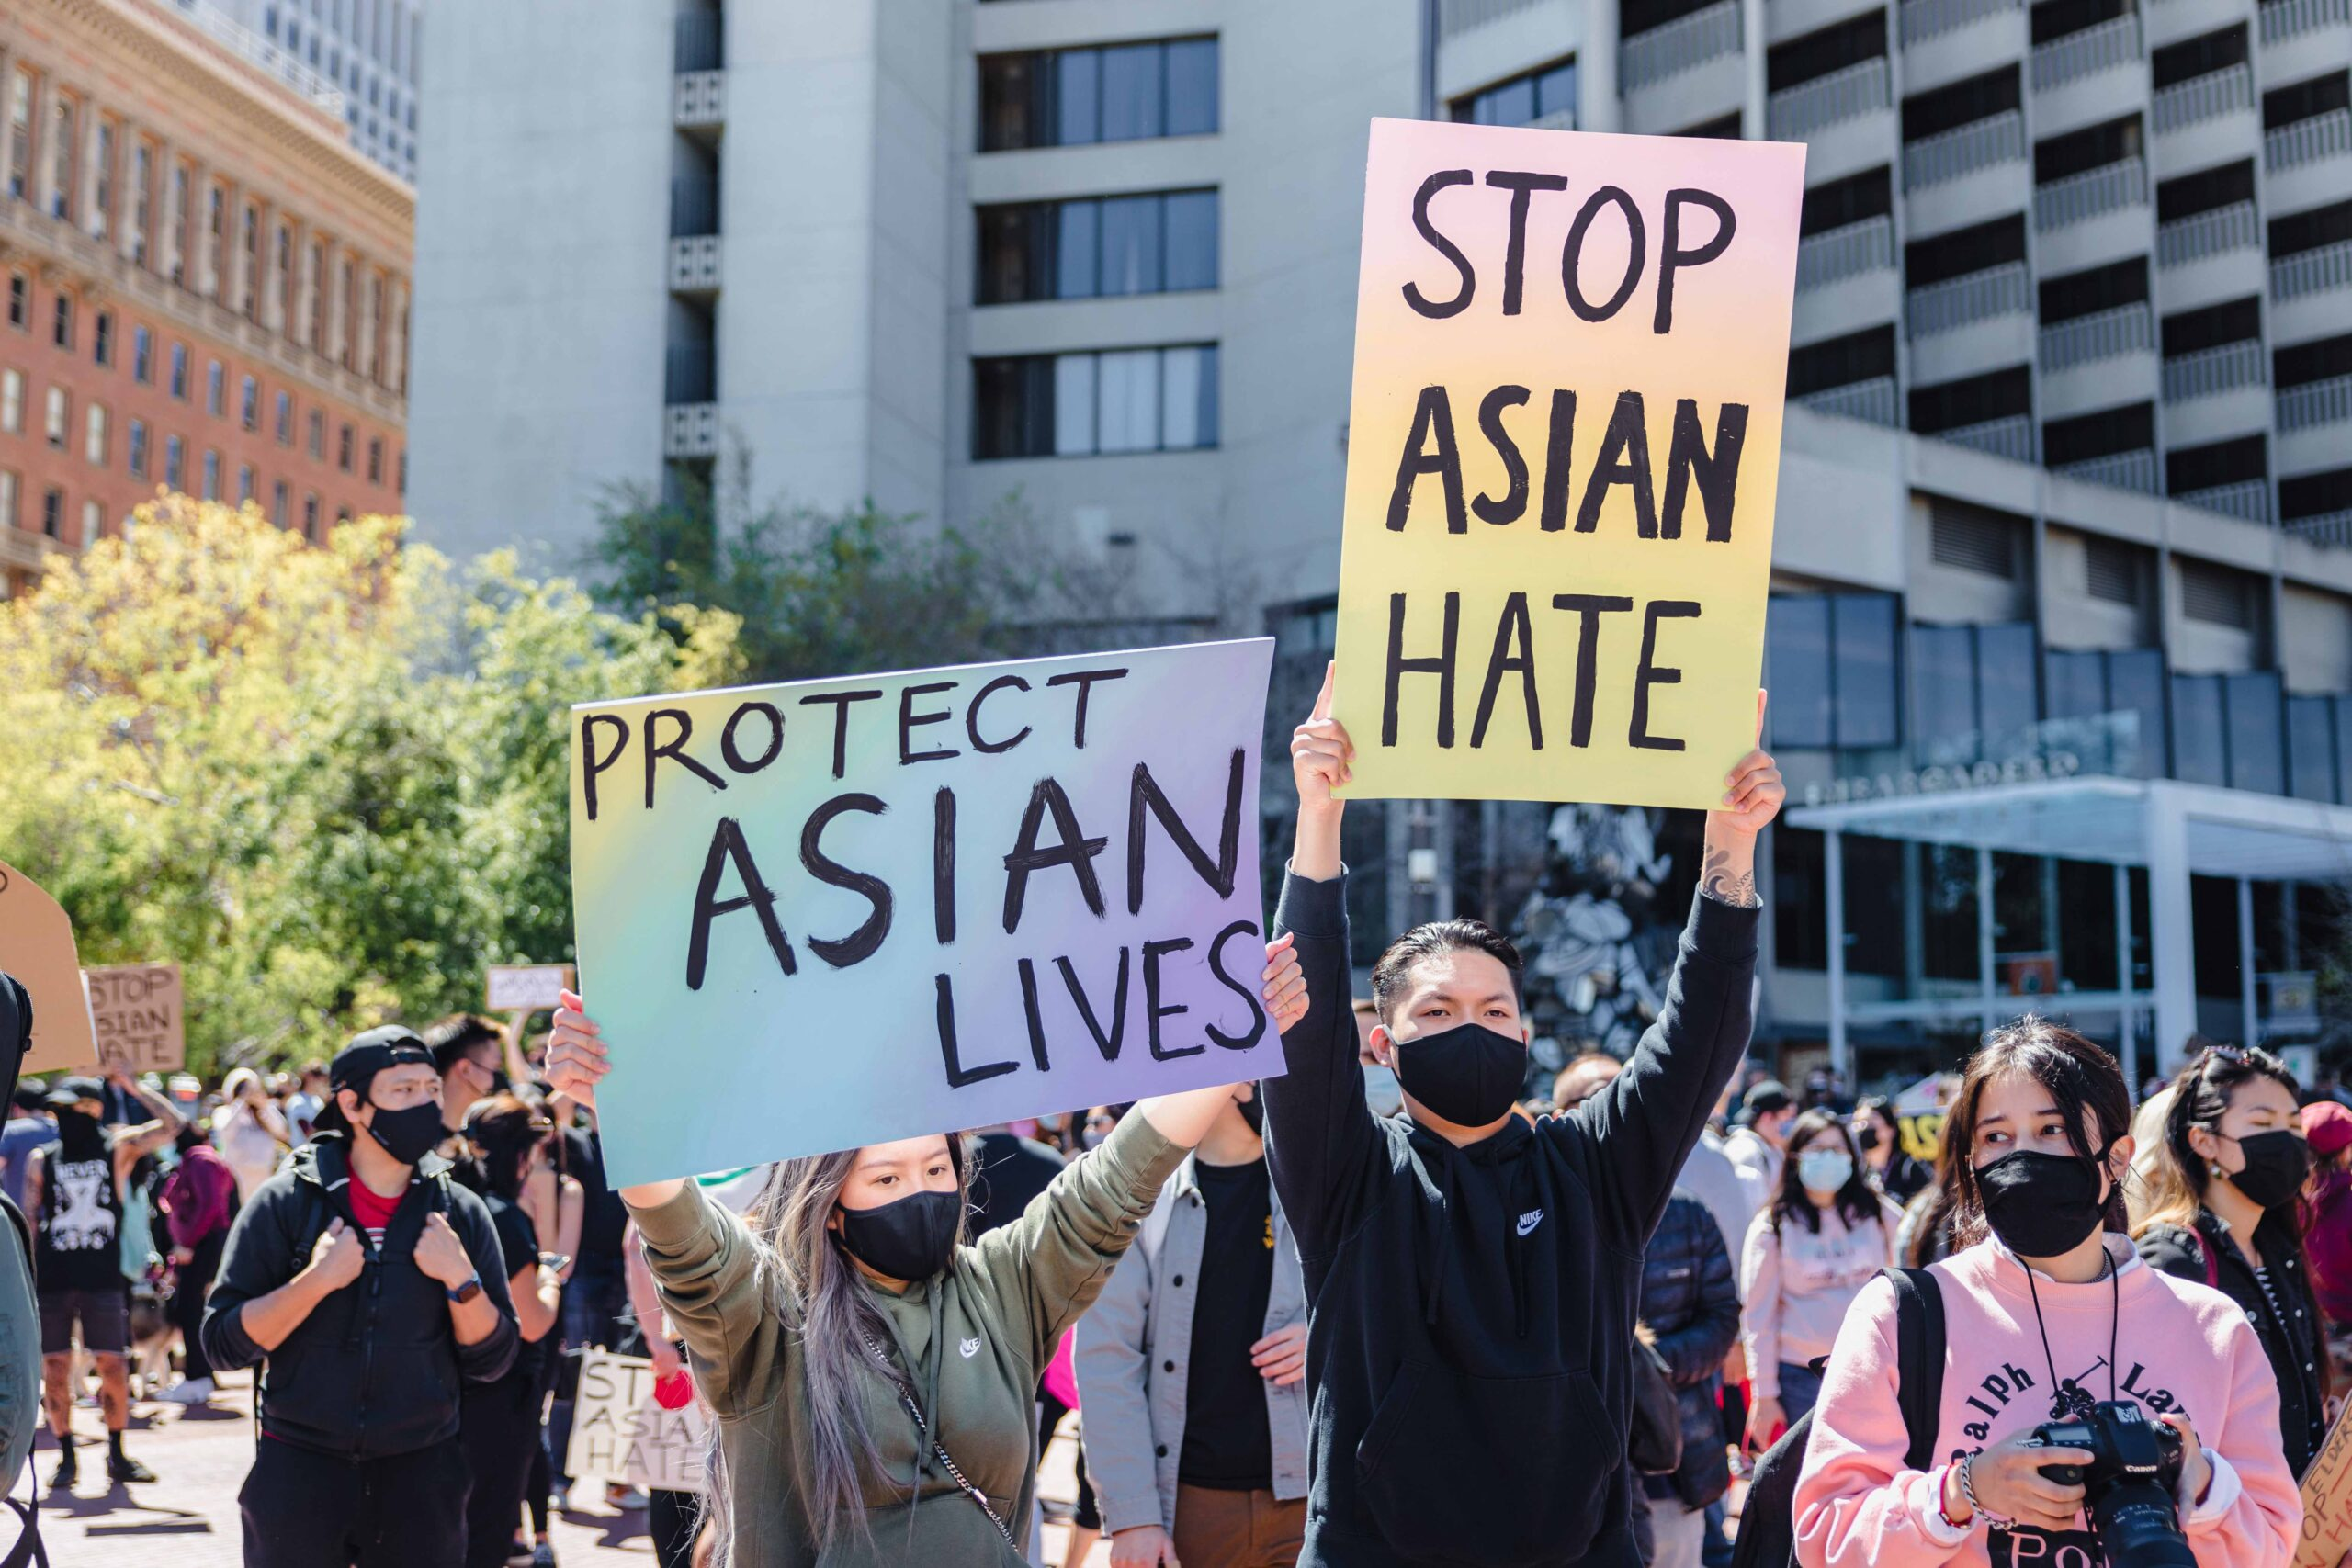 www.asianjournal.com: Report: 7 in 10 AAPI women over 50 impacted by anti-Asian hate —